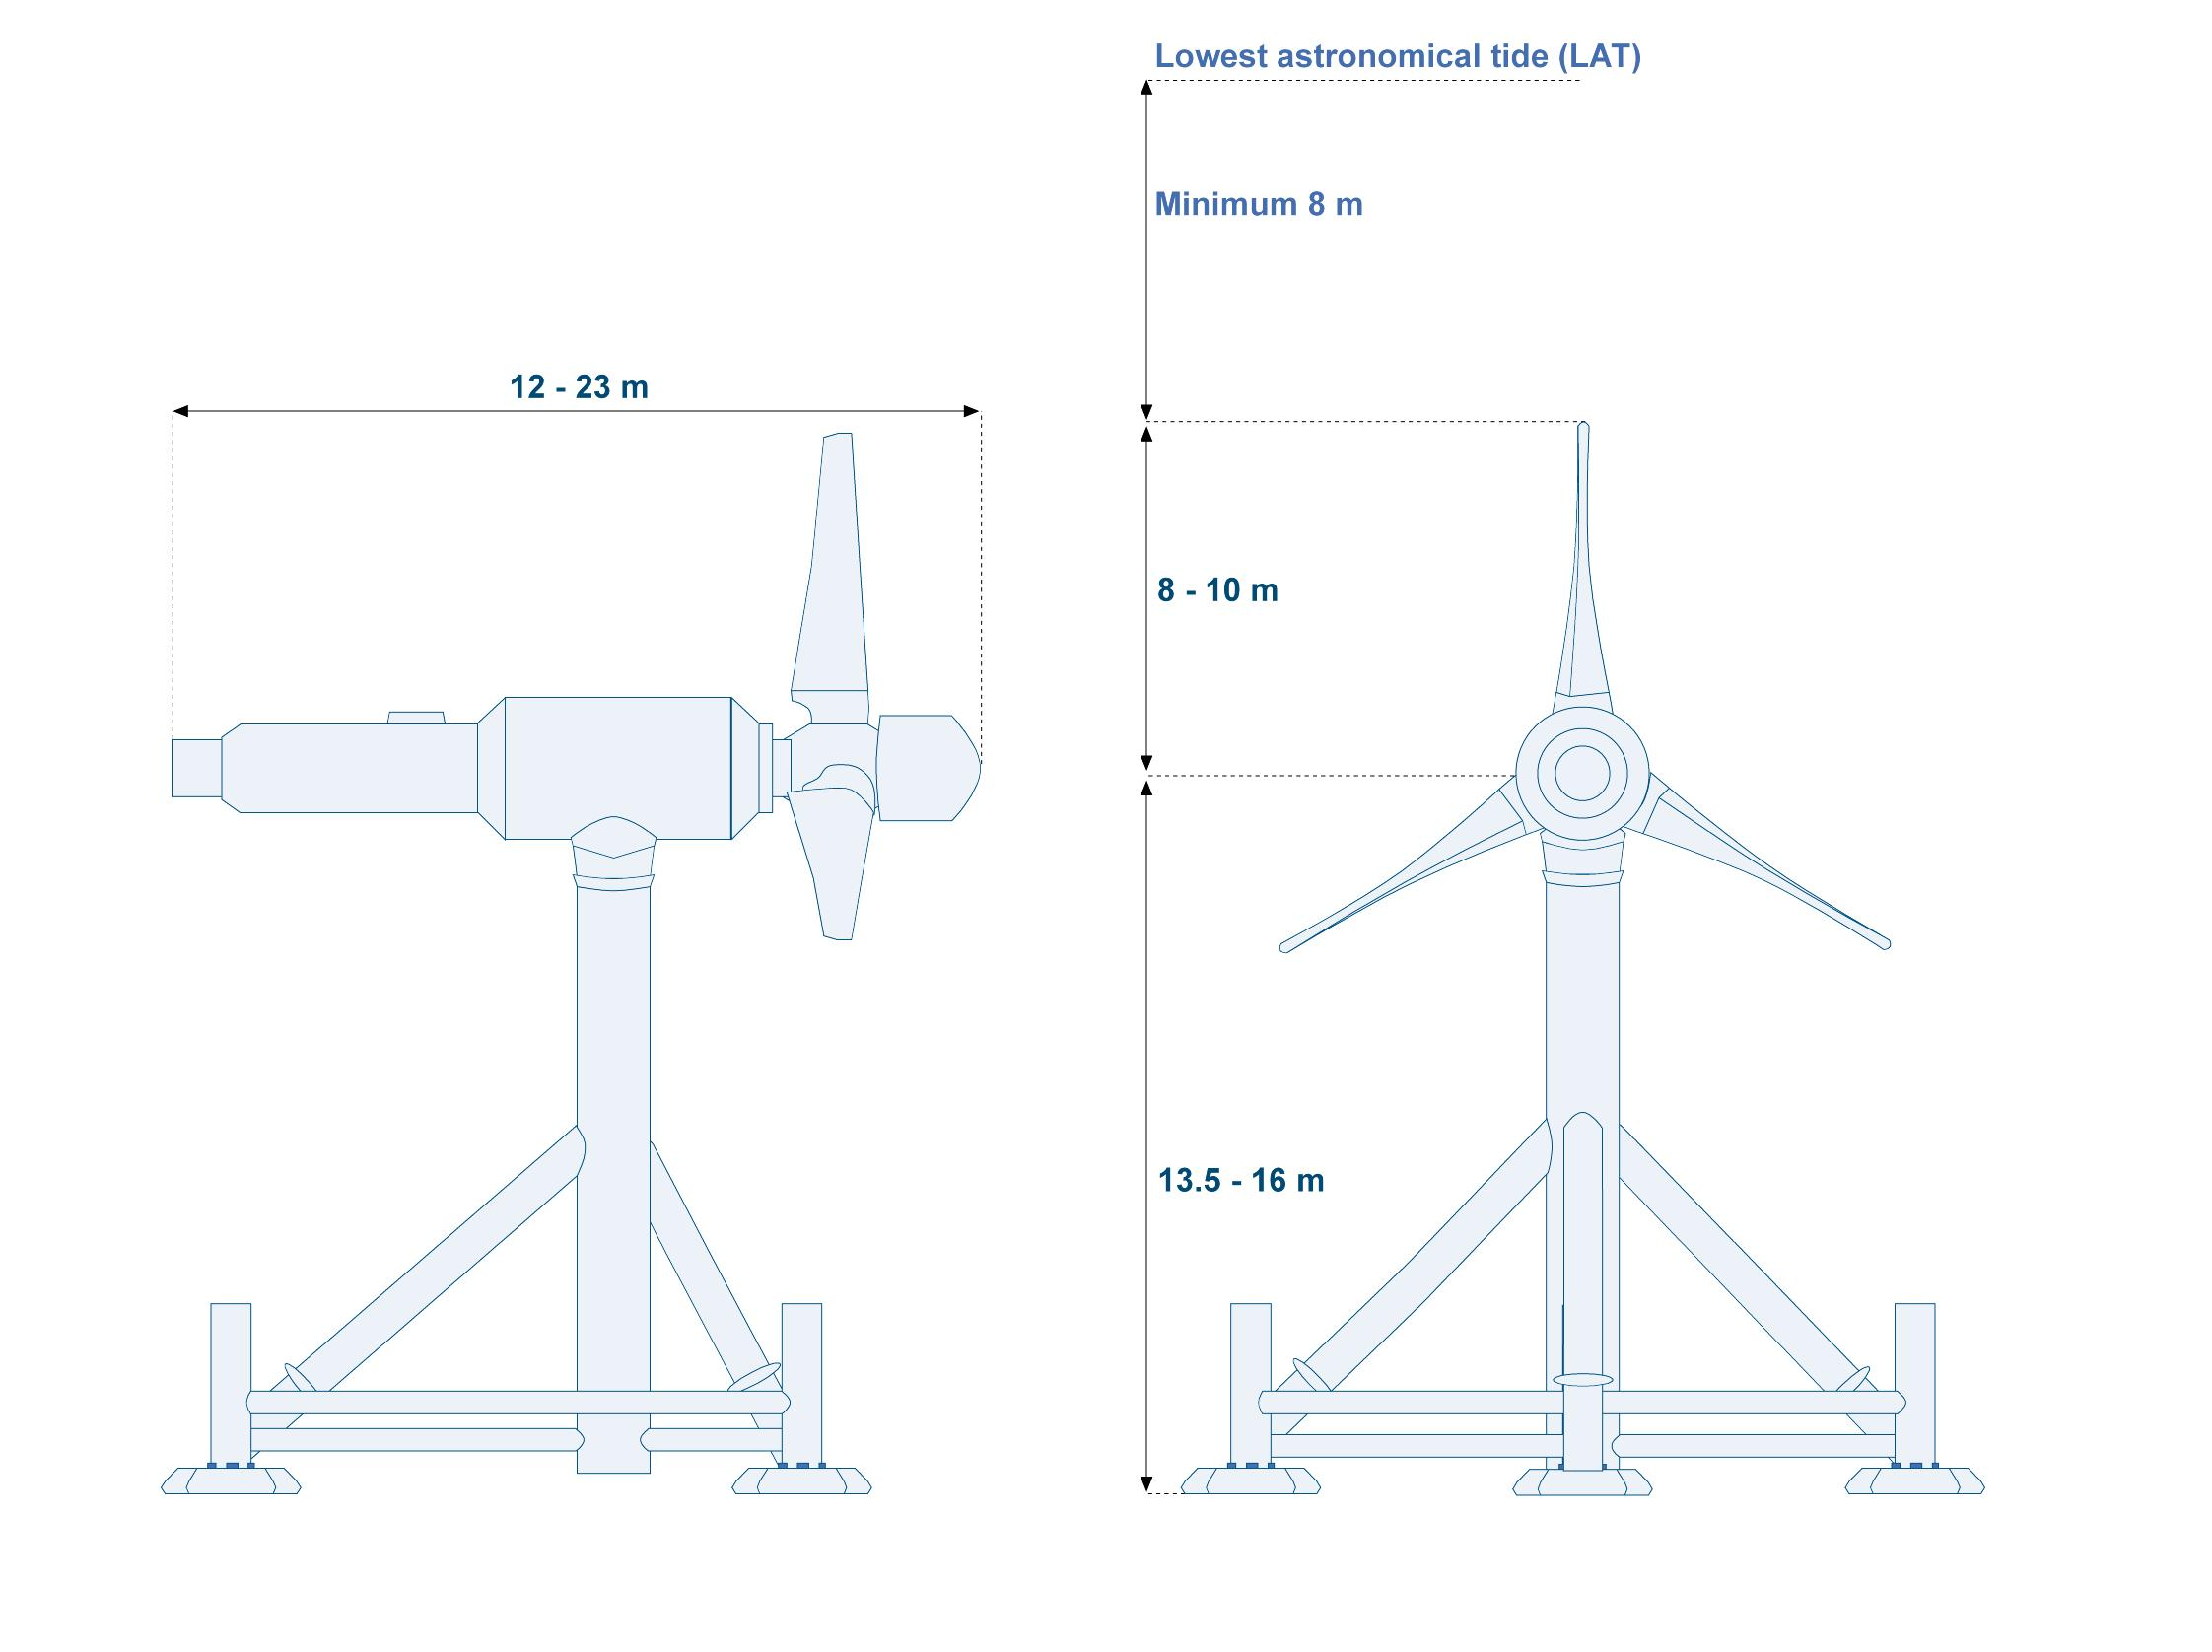 Figure 6 - The design envelope for the turbines, showing the major dimensions.